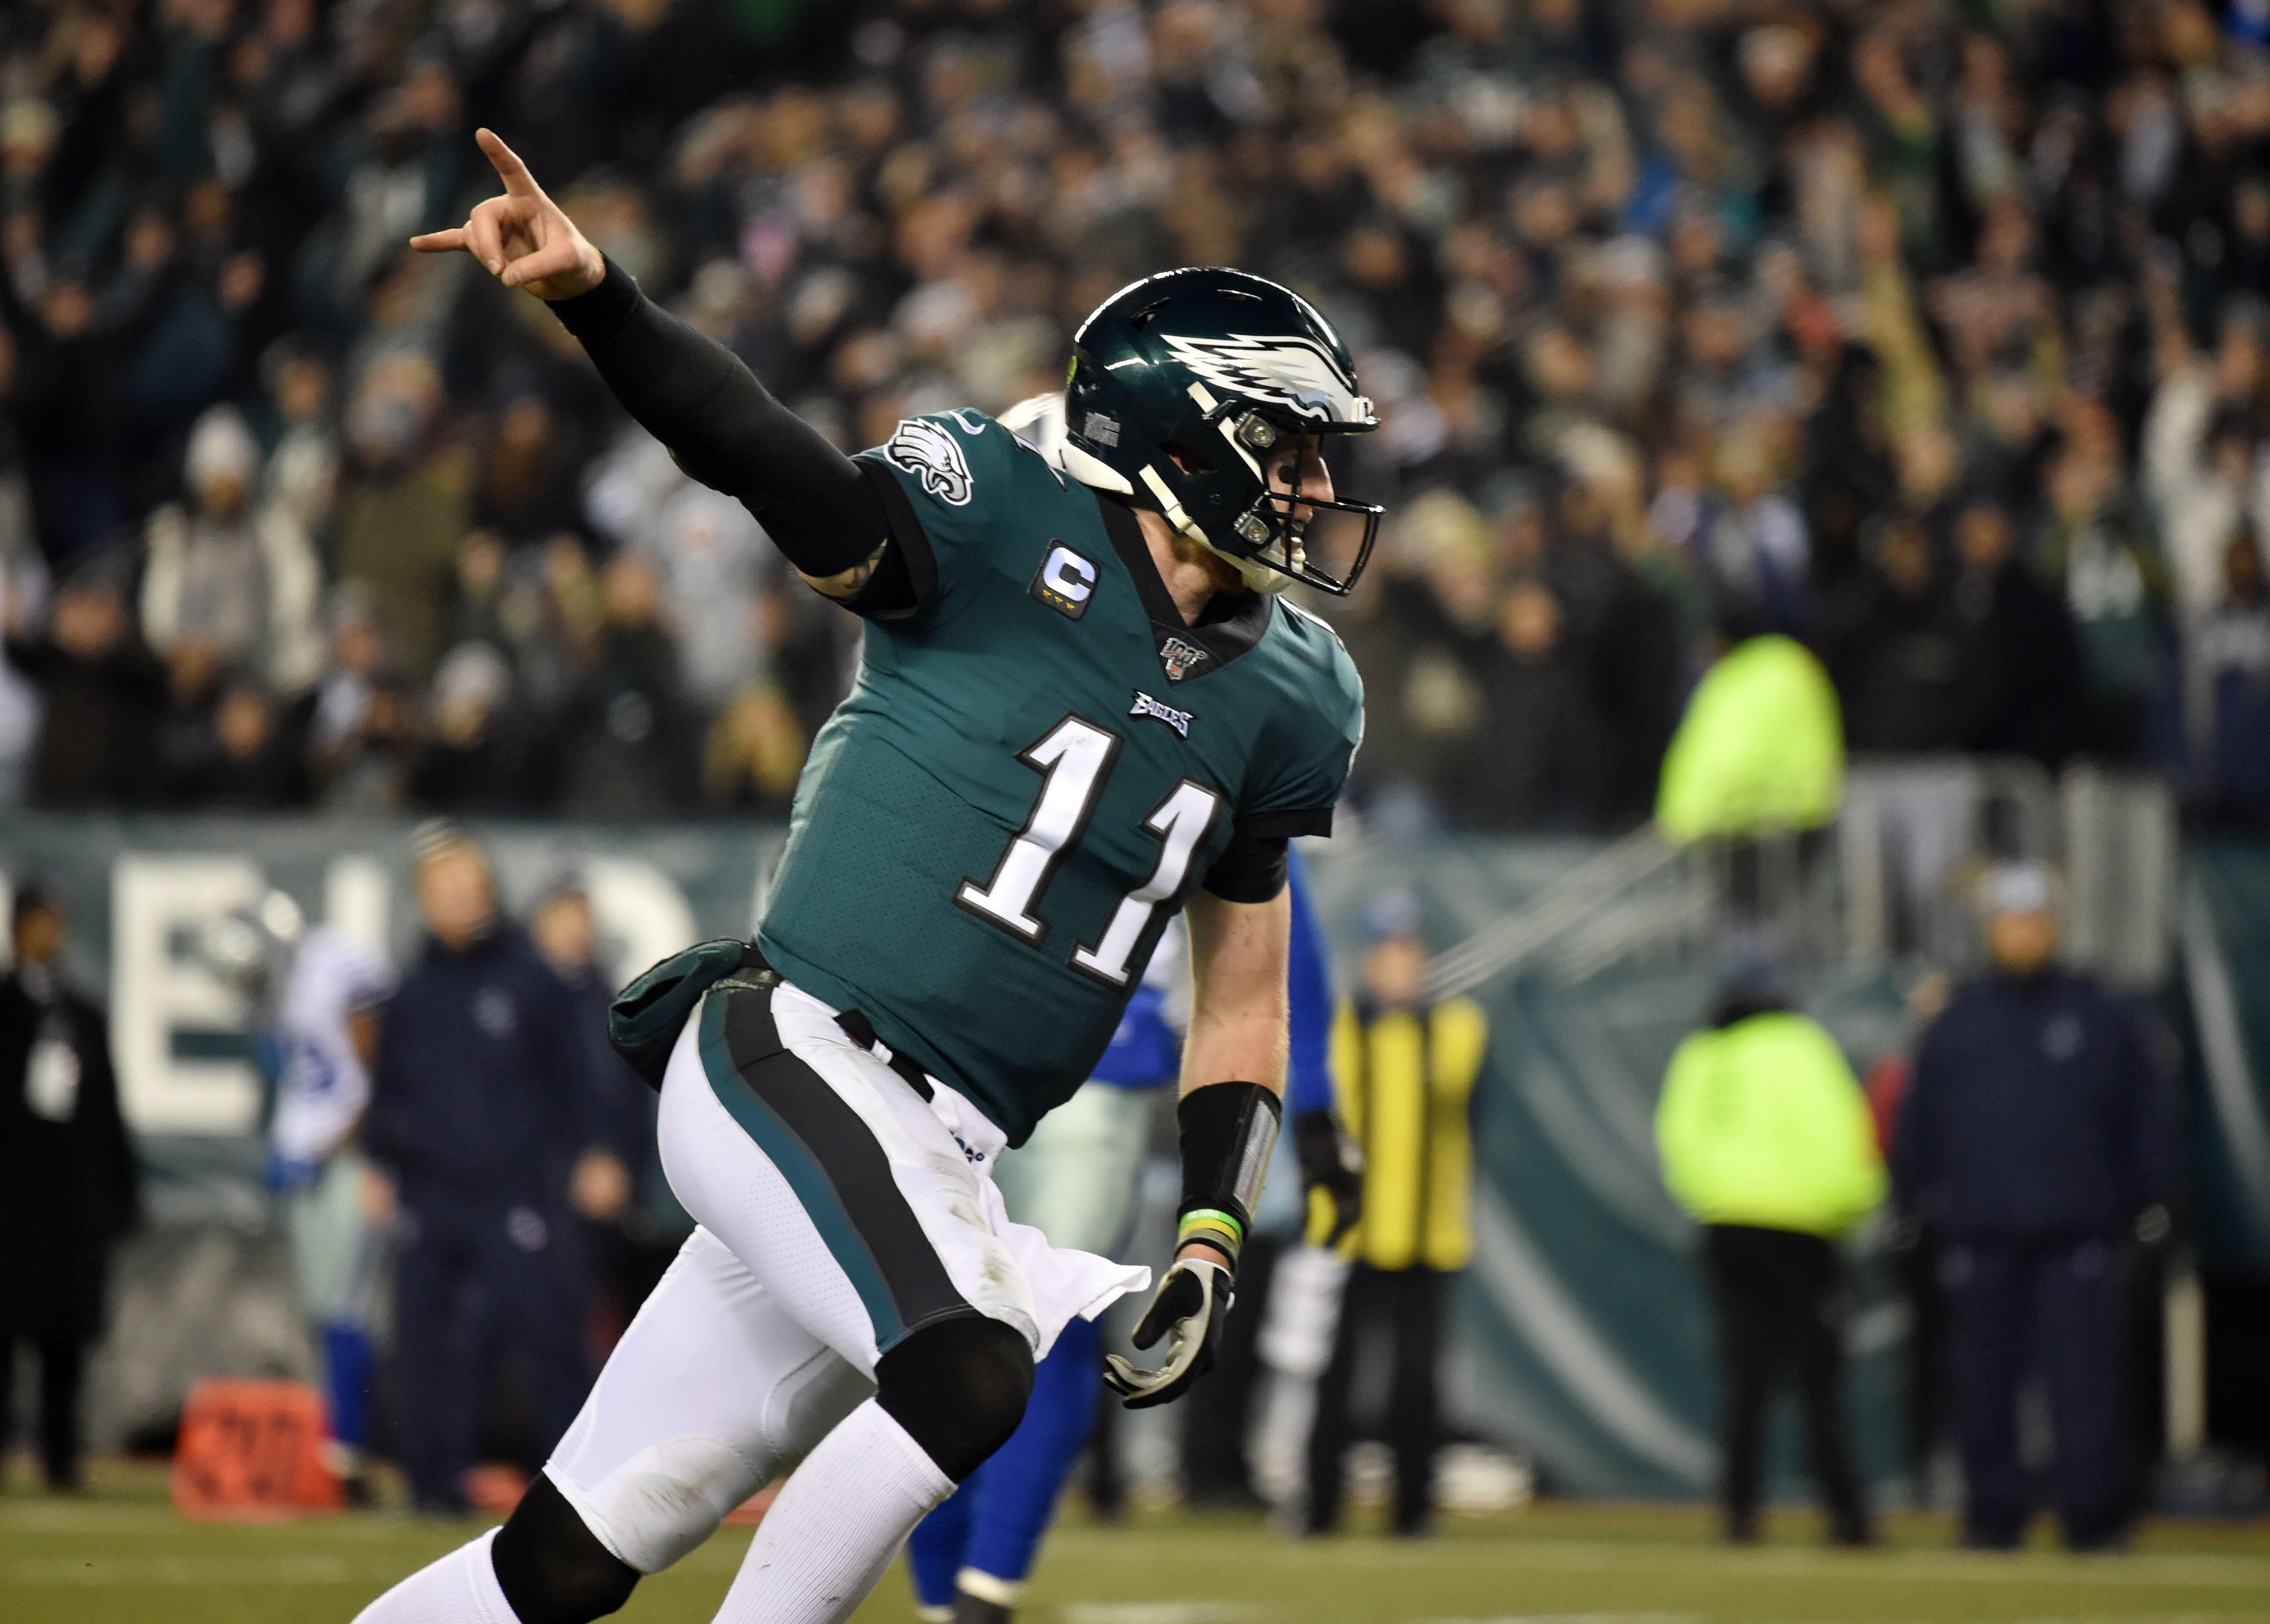 Philadelphia Eagles quarterback Carson Wentz reacts after a touchdown run by running back Miles Sanders (not pictured) during the third quarter at Lincoln Financial Field.